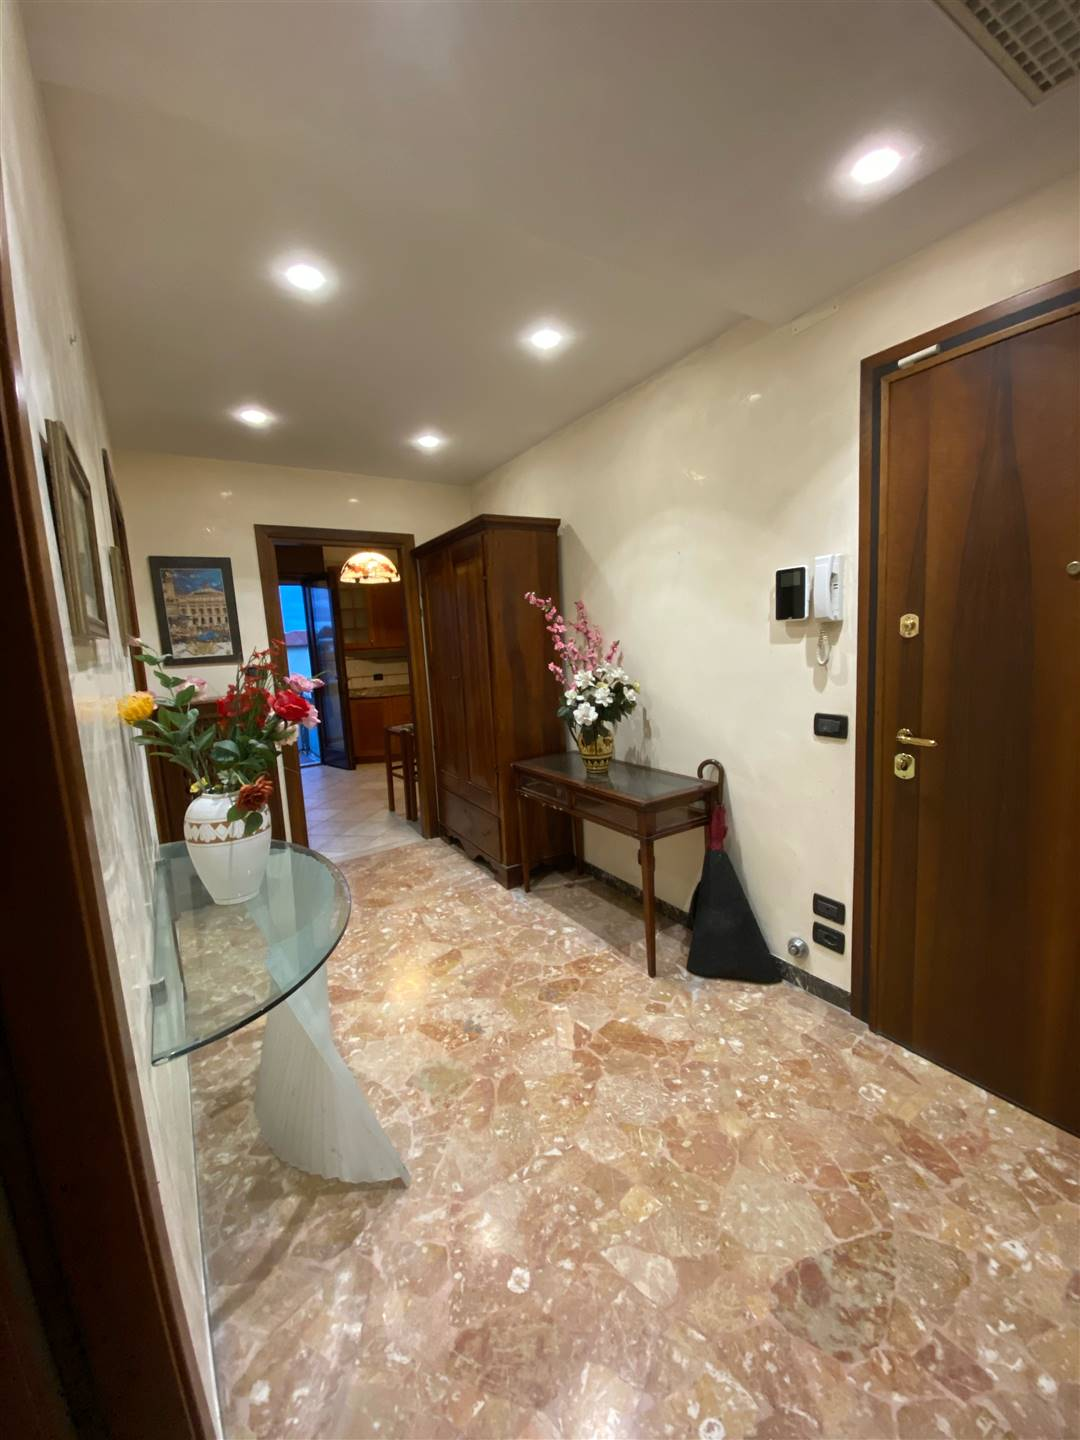 MESTRE CENTRO, VENEZIA, Apartment for sale of 130 Sq. mt., Excellent Condition, Heating Individual heating system, Energetic class: G, placed at 4°